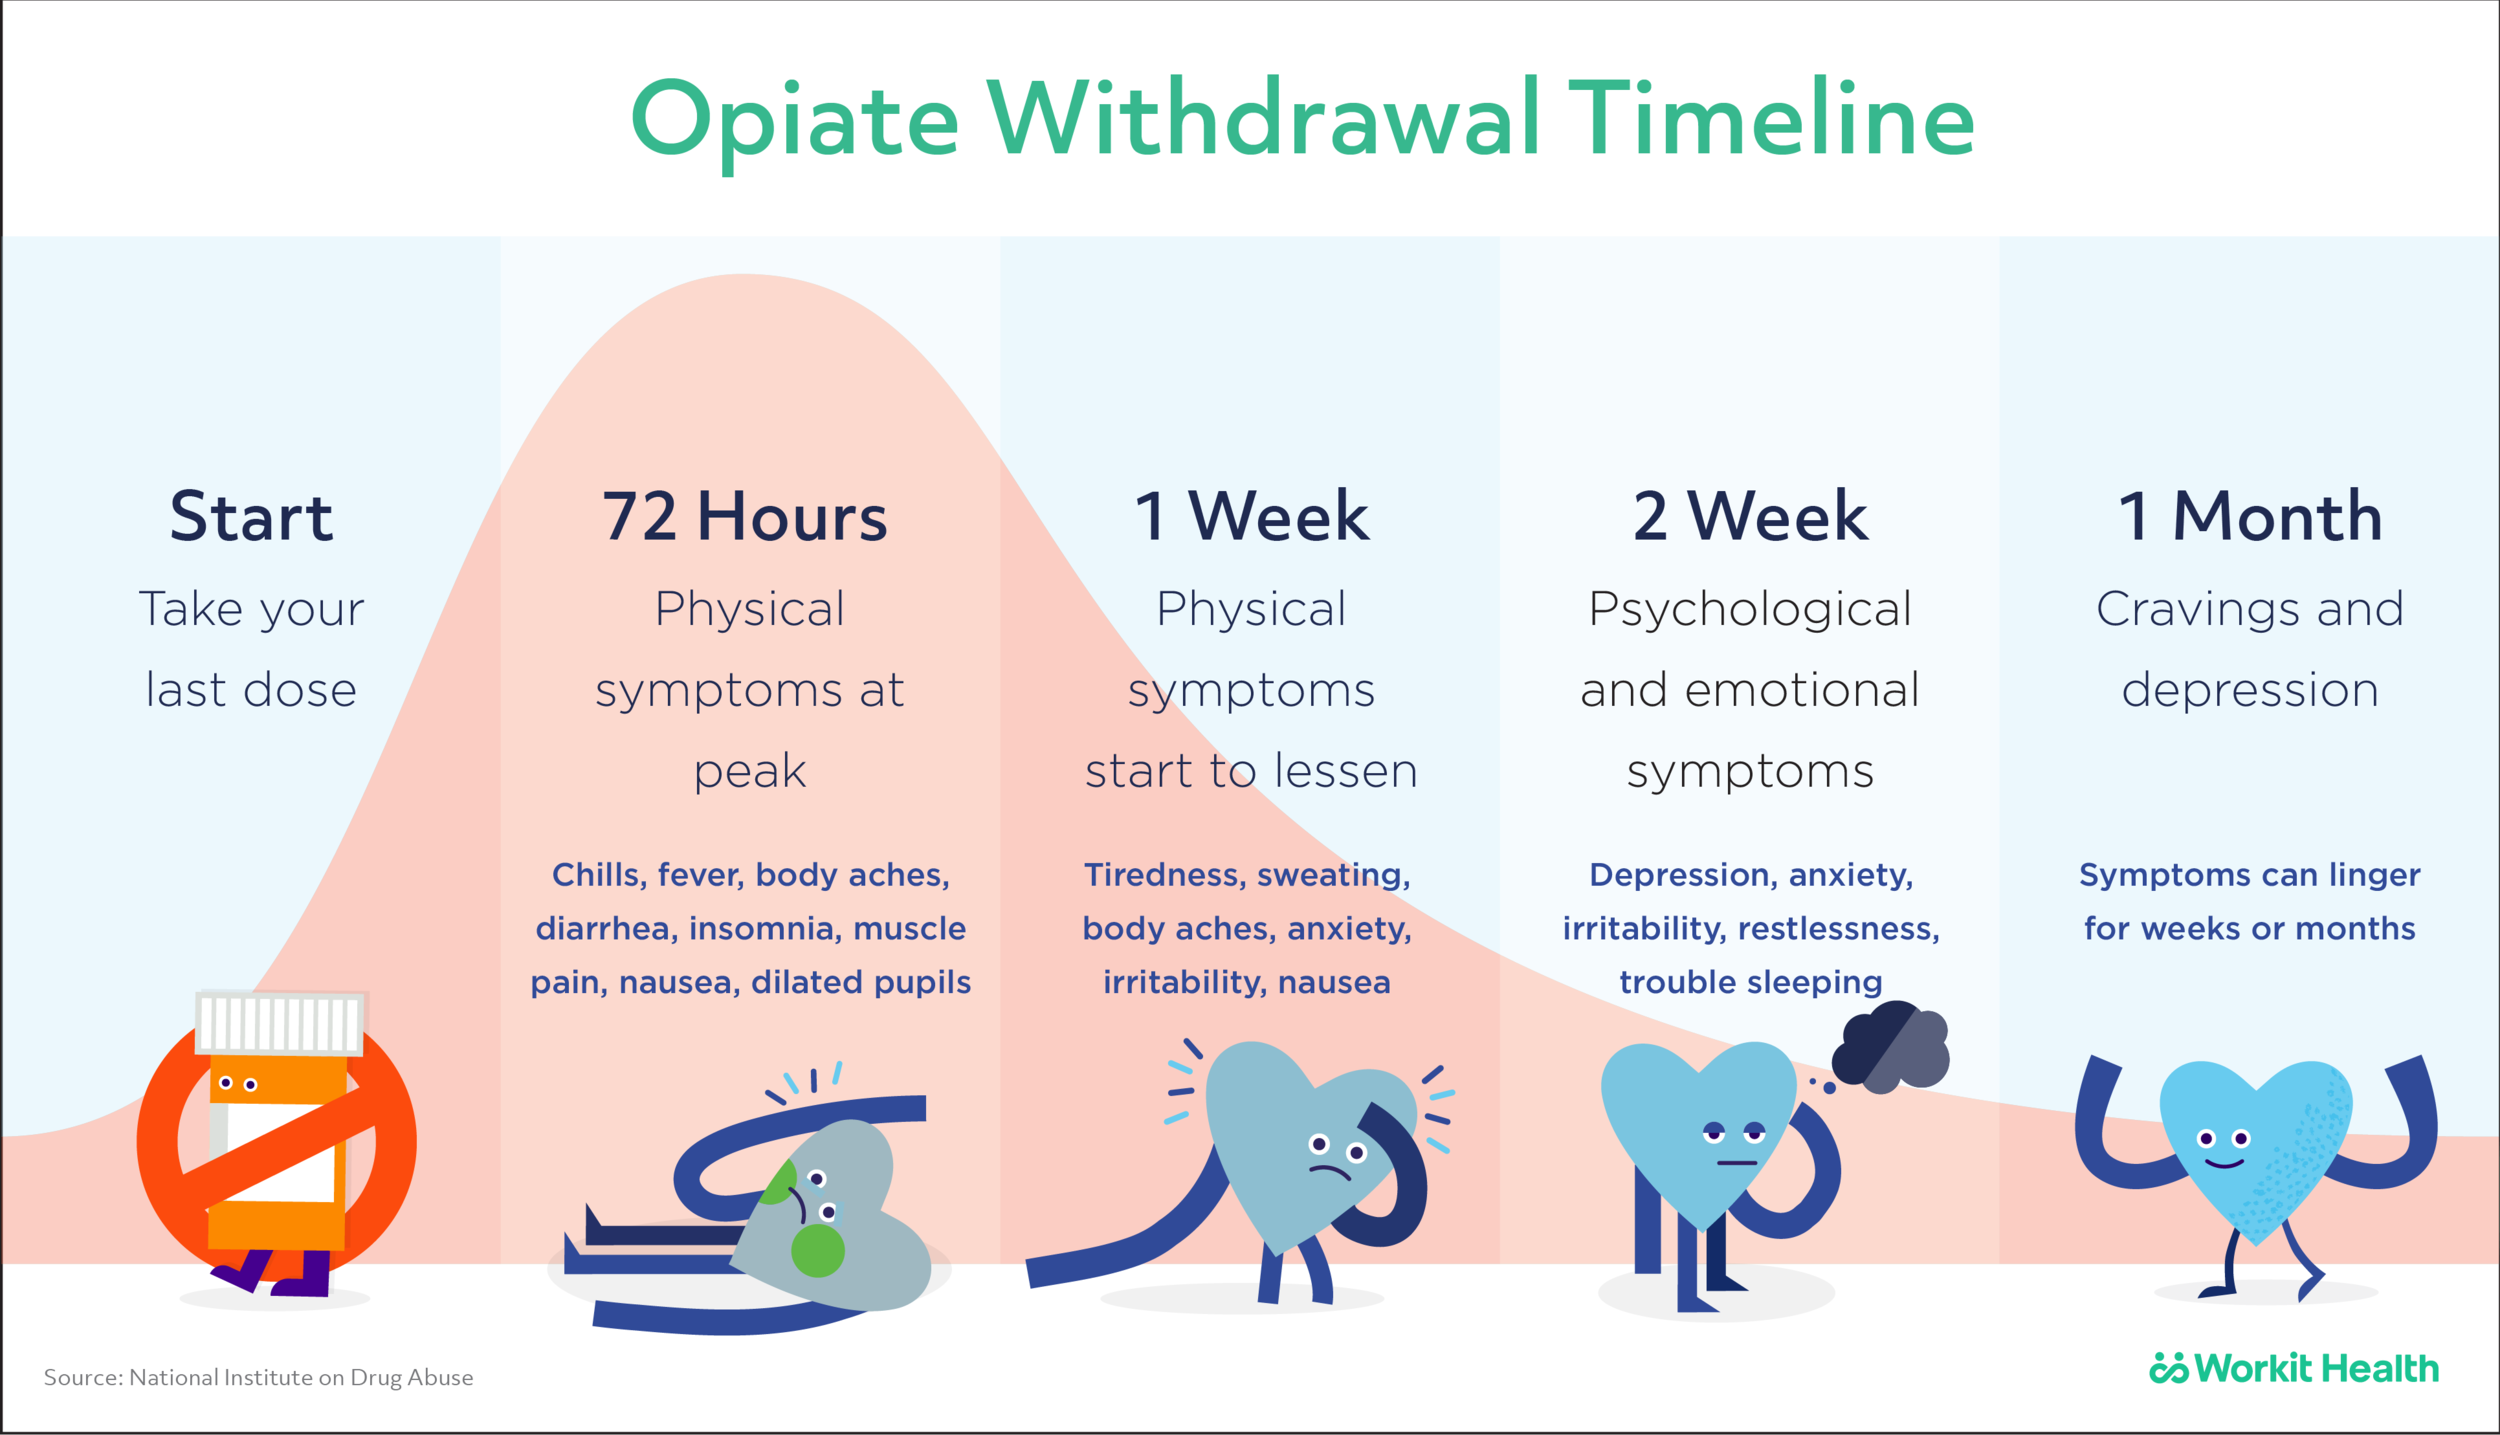 opiate withdrawal timeline what to expect (downloadable) \u2014 workitopiate withdrawal timeline what to expect (downloadable) \u2014 workit health suboxone, online therapy, \u0026 recovery coaching for addiction